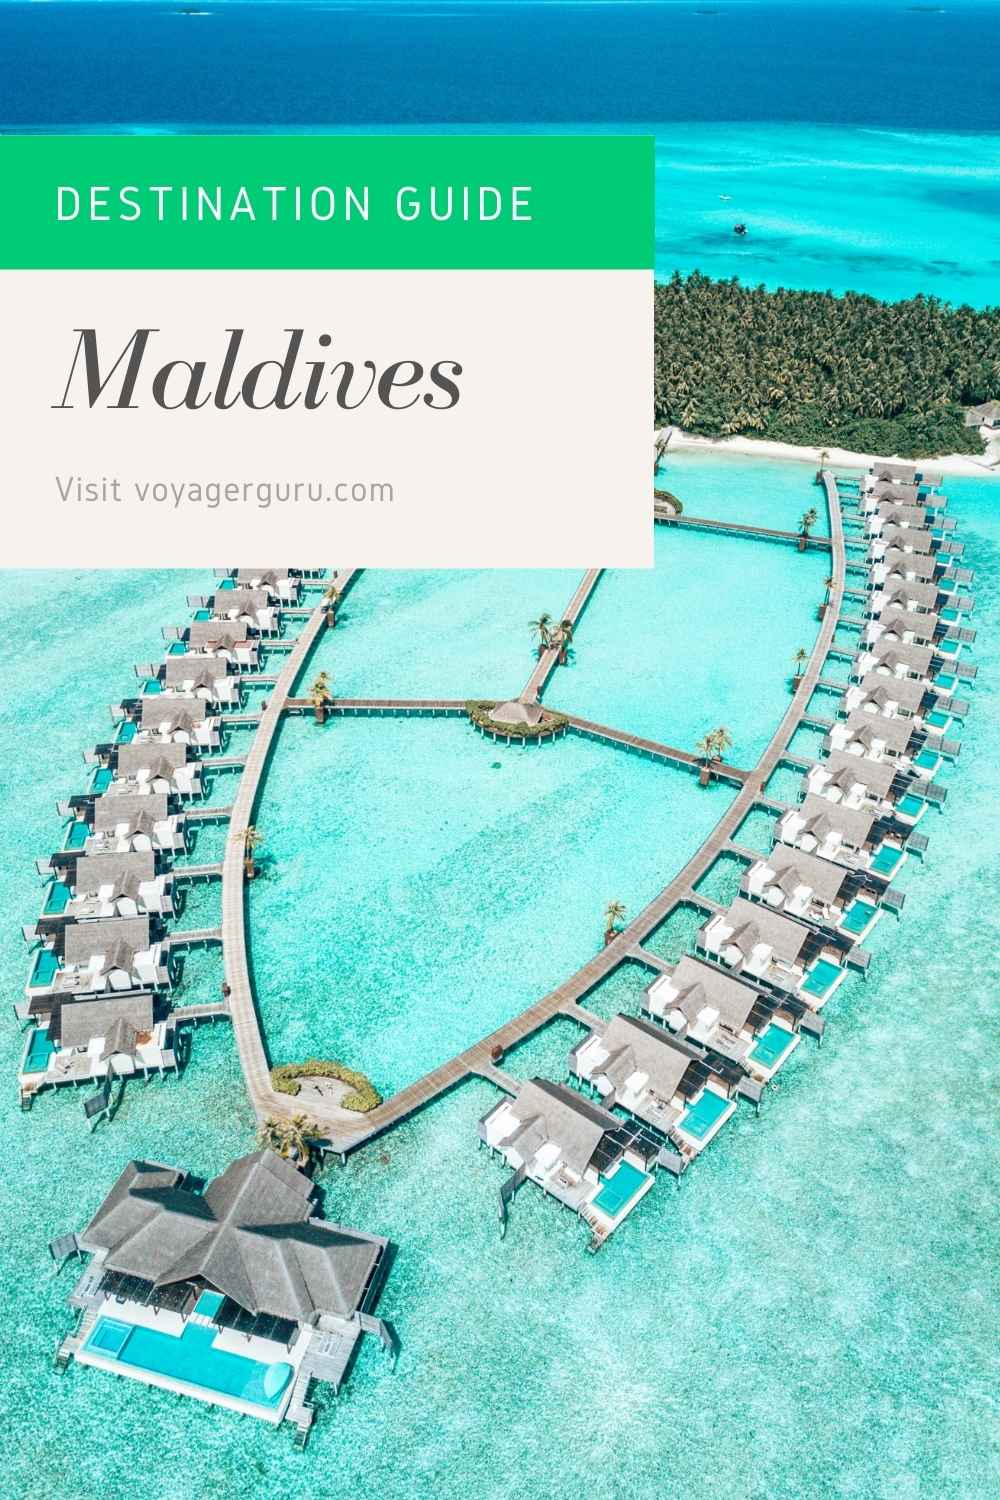 maldives destination guide pin 4